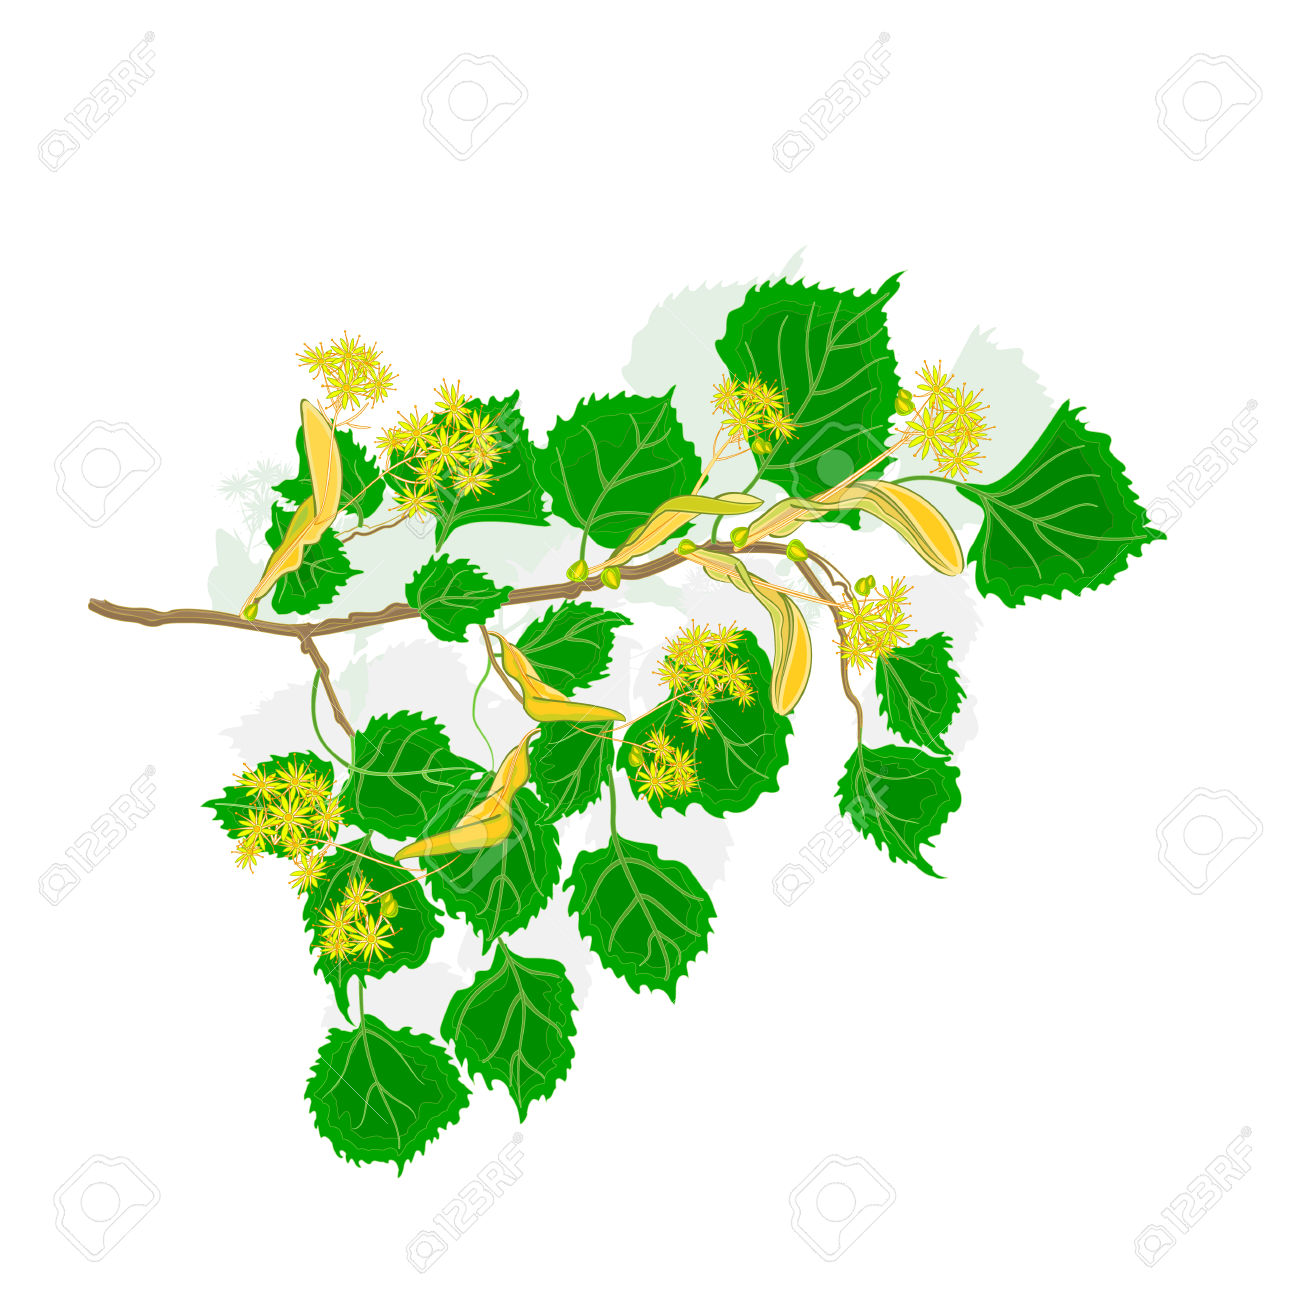 Linden Twig With Flowers Vector Illustration Without Gradients.